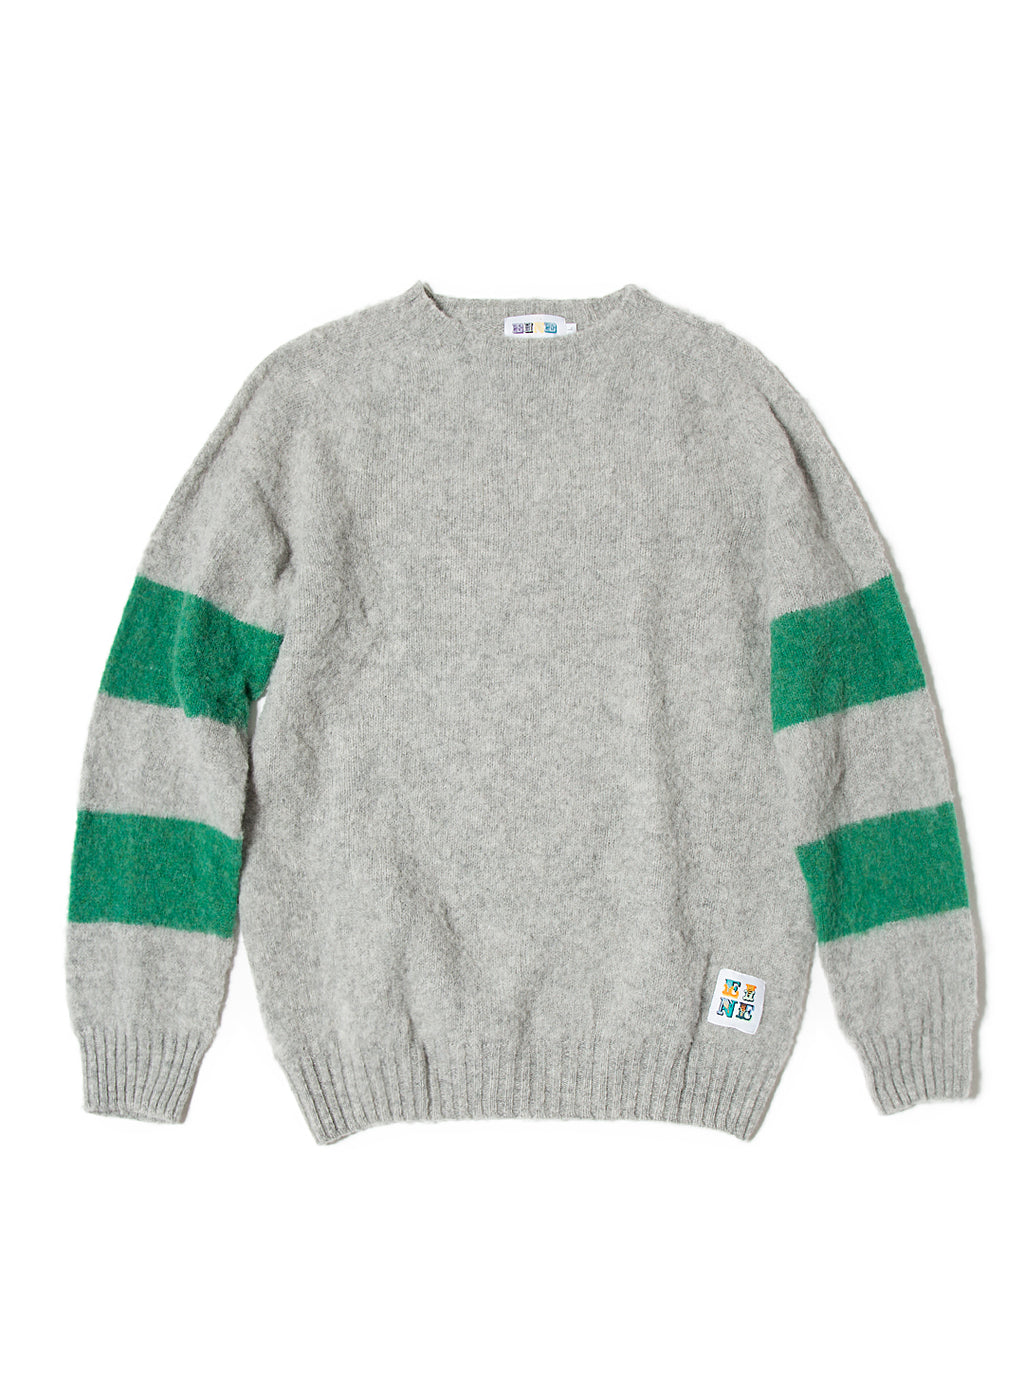 EINE Contrast Brushed Wool Jumper - Grey Green Sample